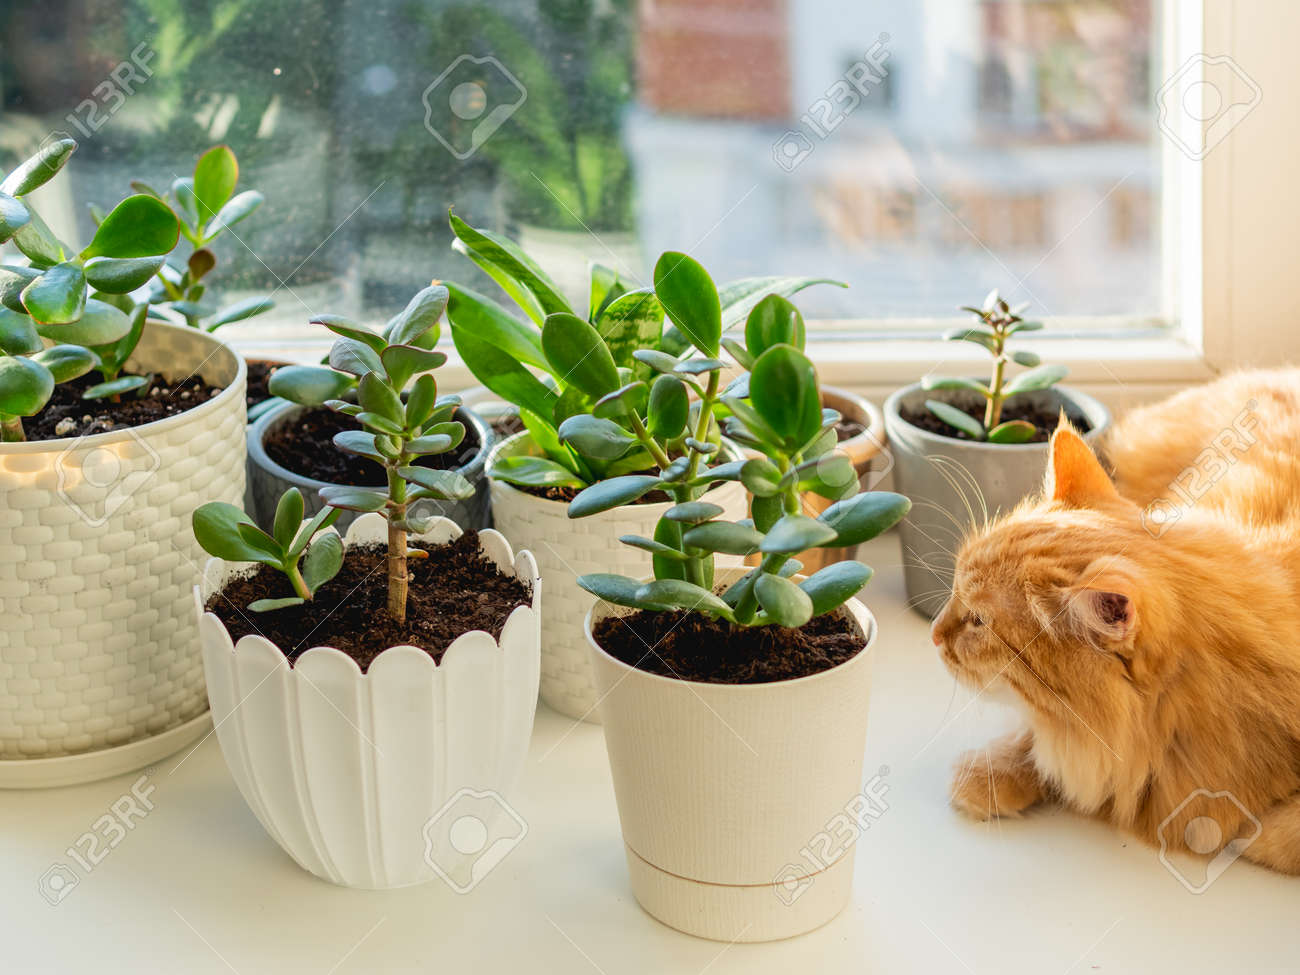 Cute ginger cat lying on window sill among flower pots with houseplants. Fluffy domestic animal near succulent Crassula plants. Cozy home lit with sunlight. - 173426494